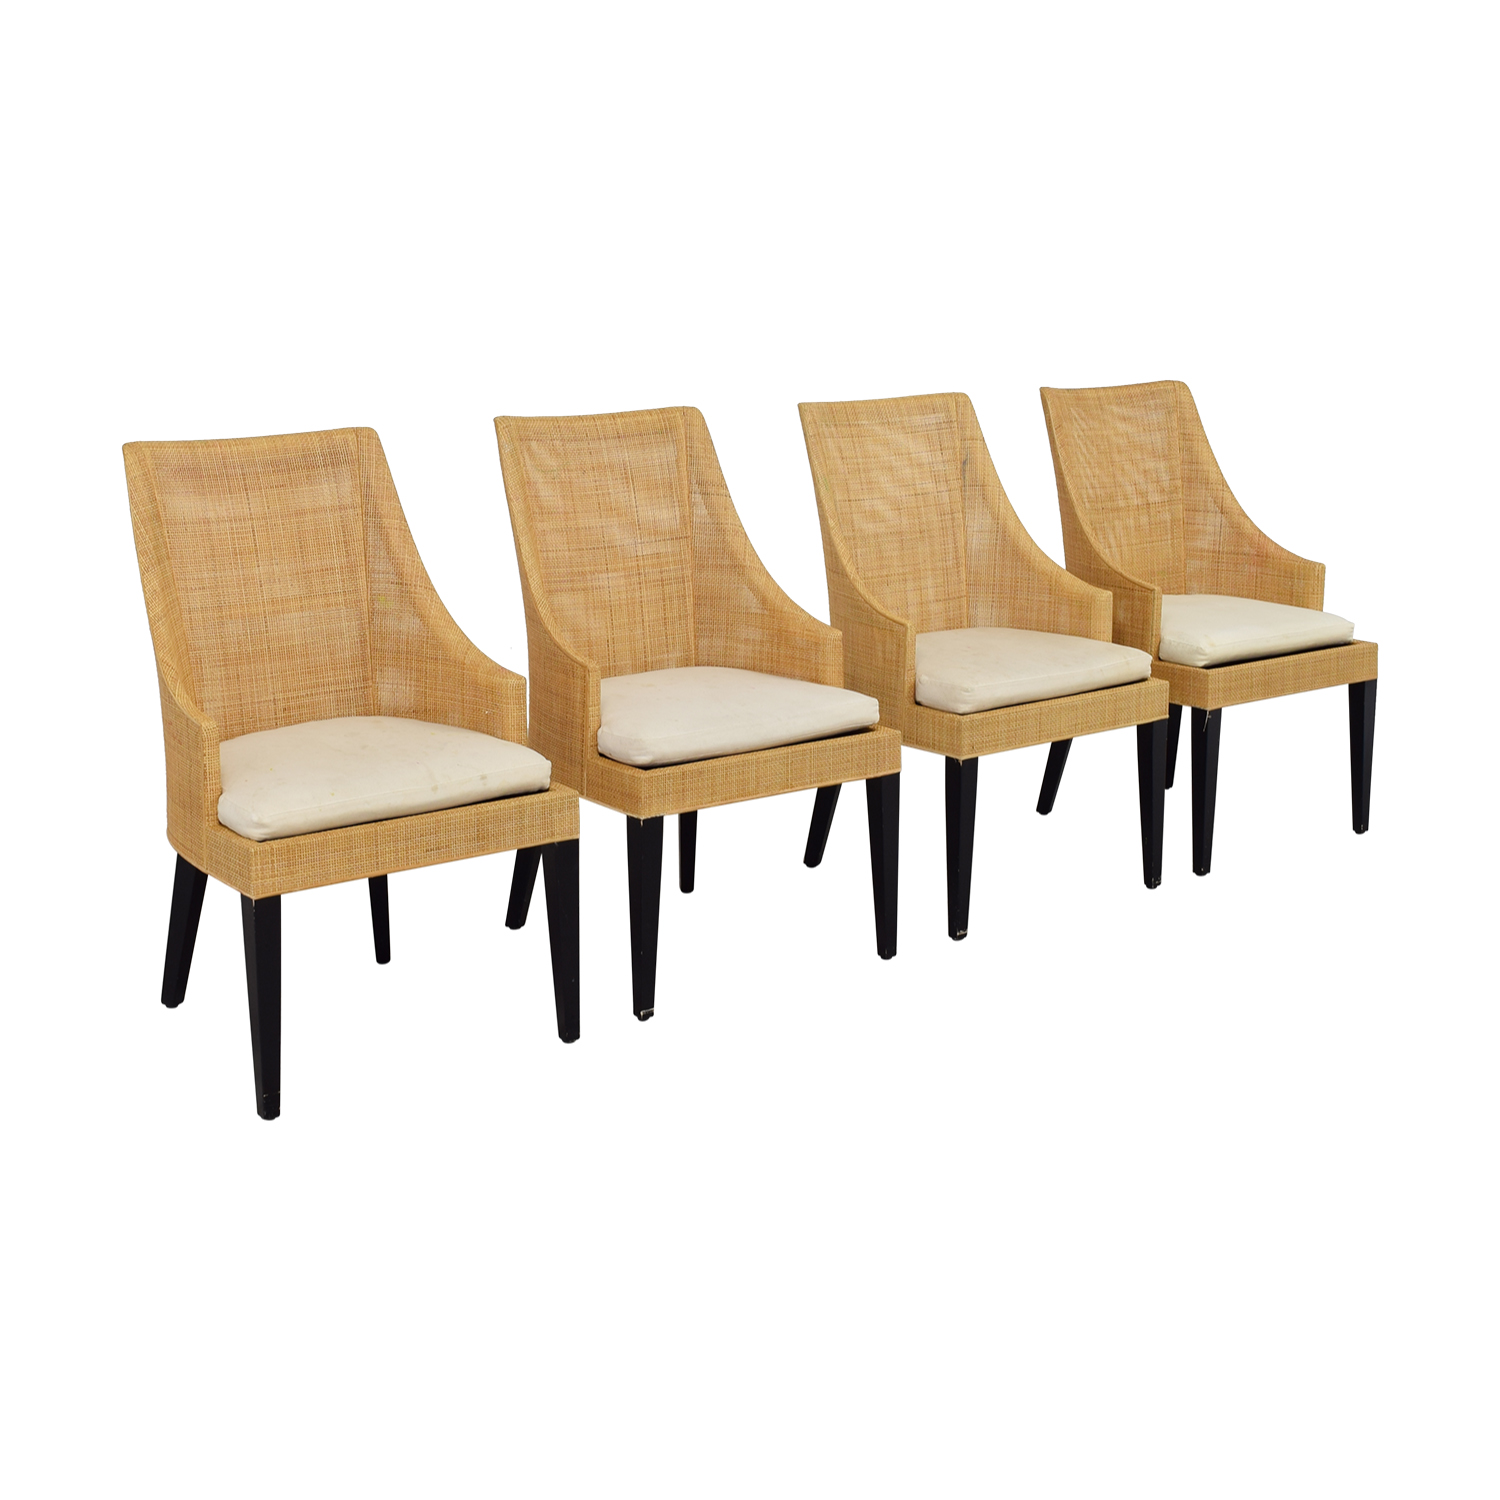 West Elm West Elm Dining Chairs coupon